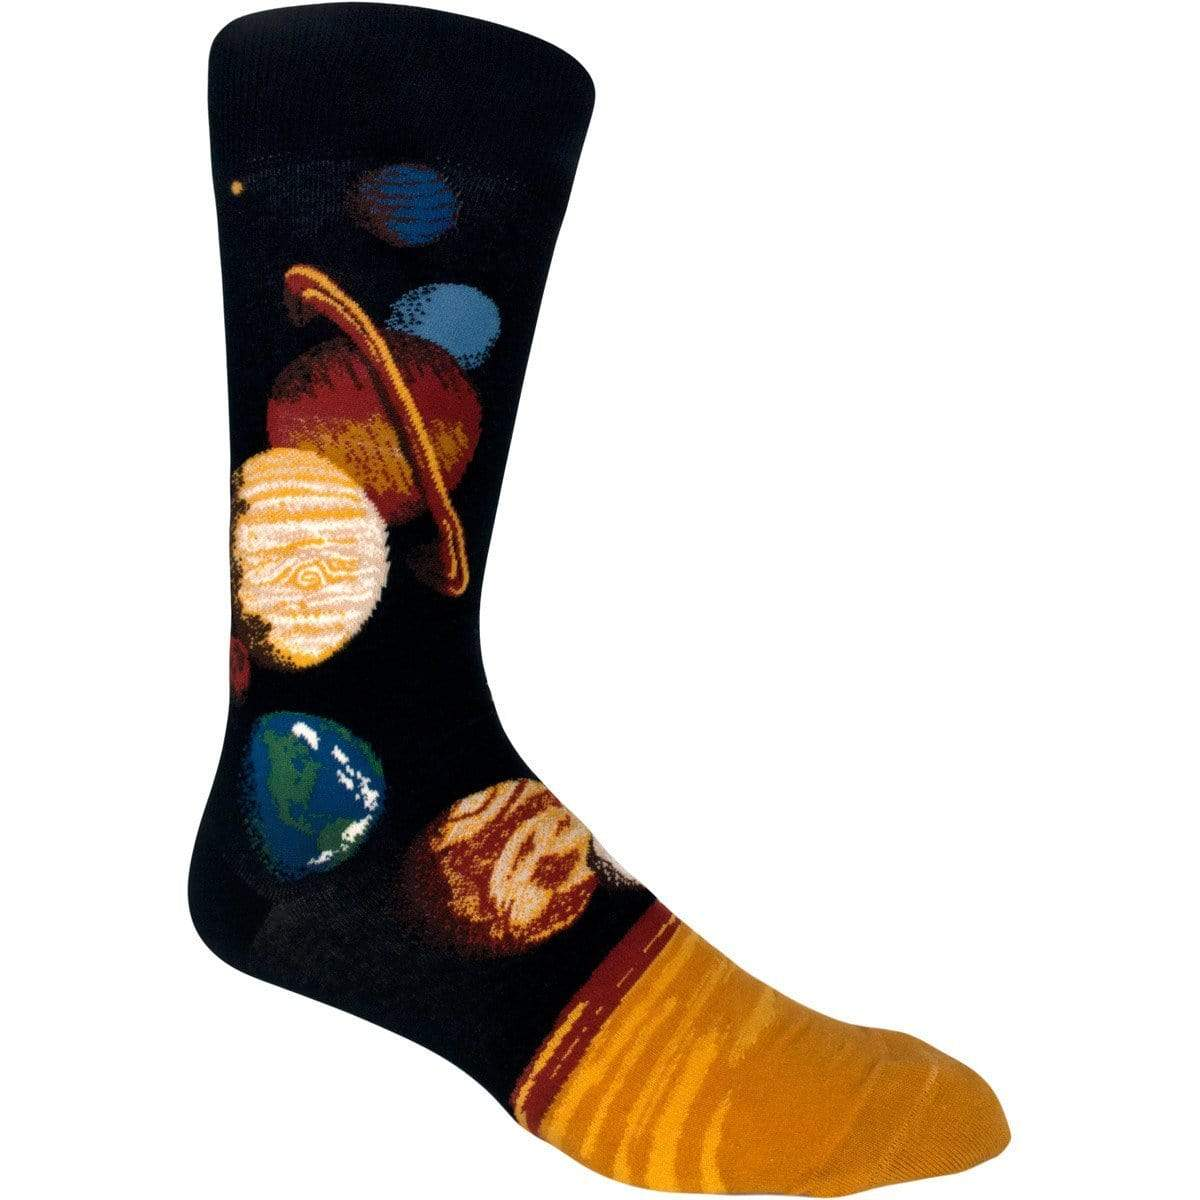 Solar System Crew Socks for Men